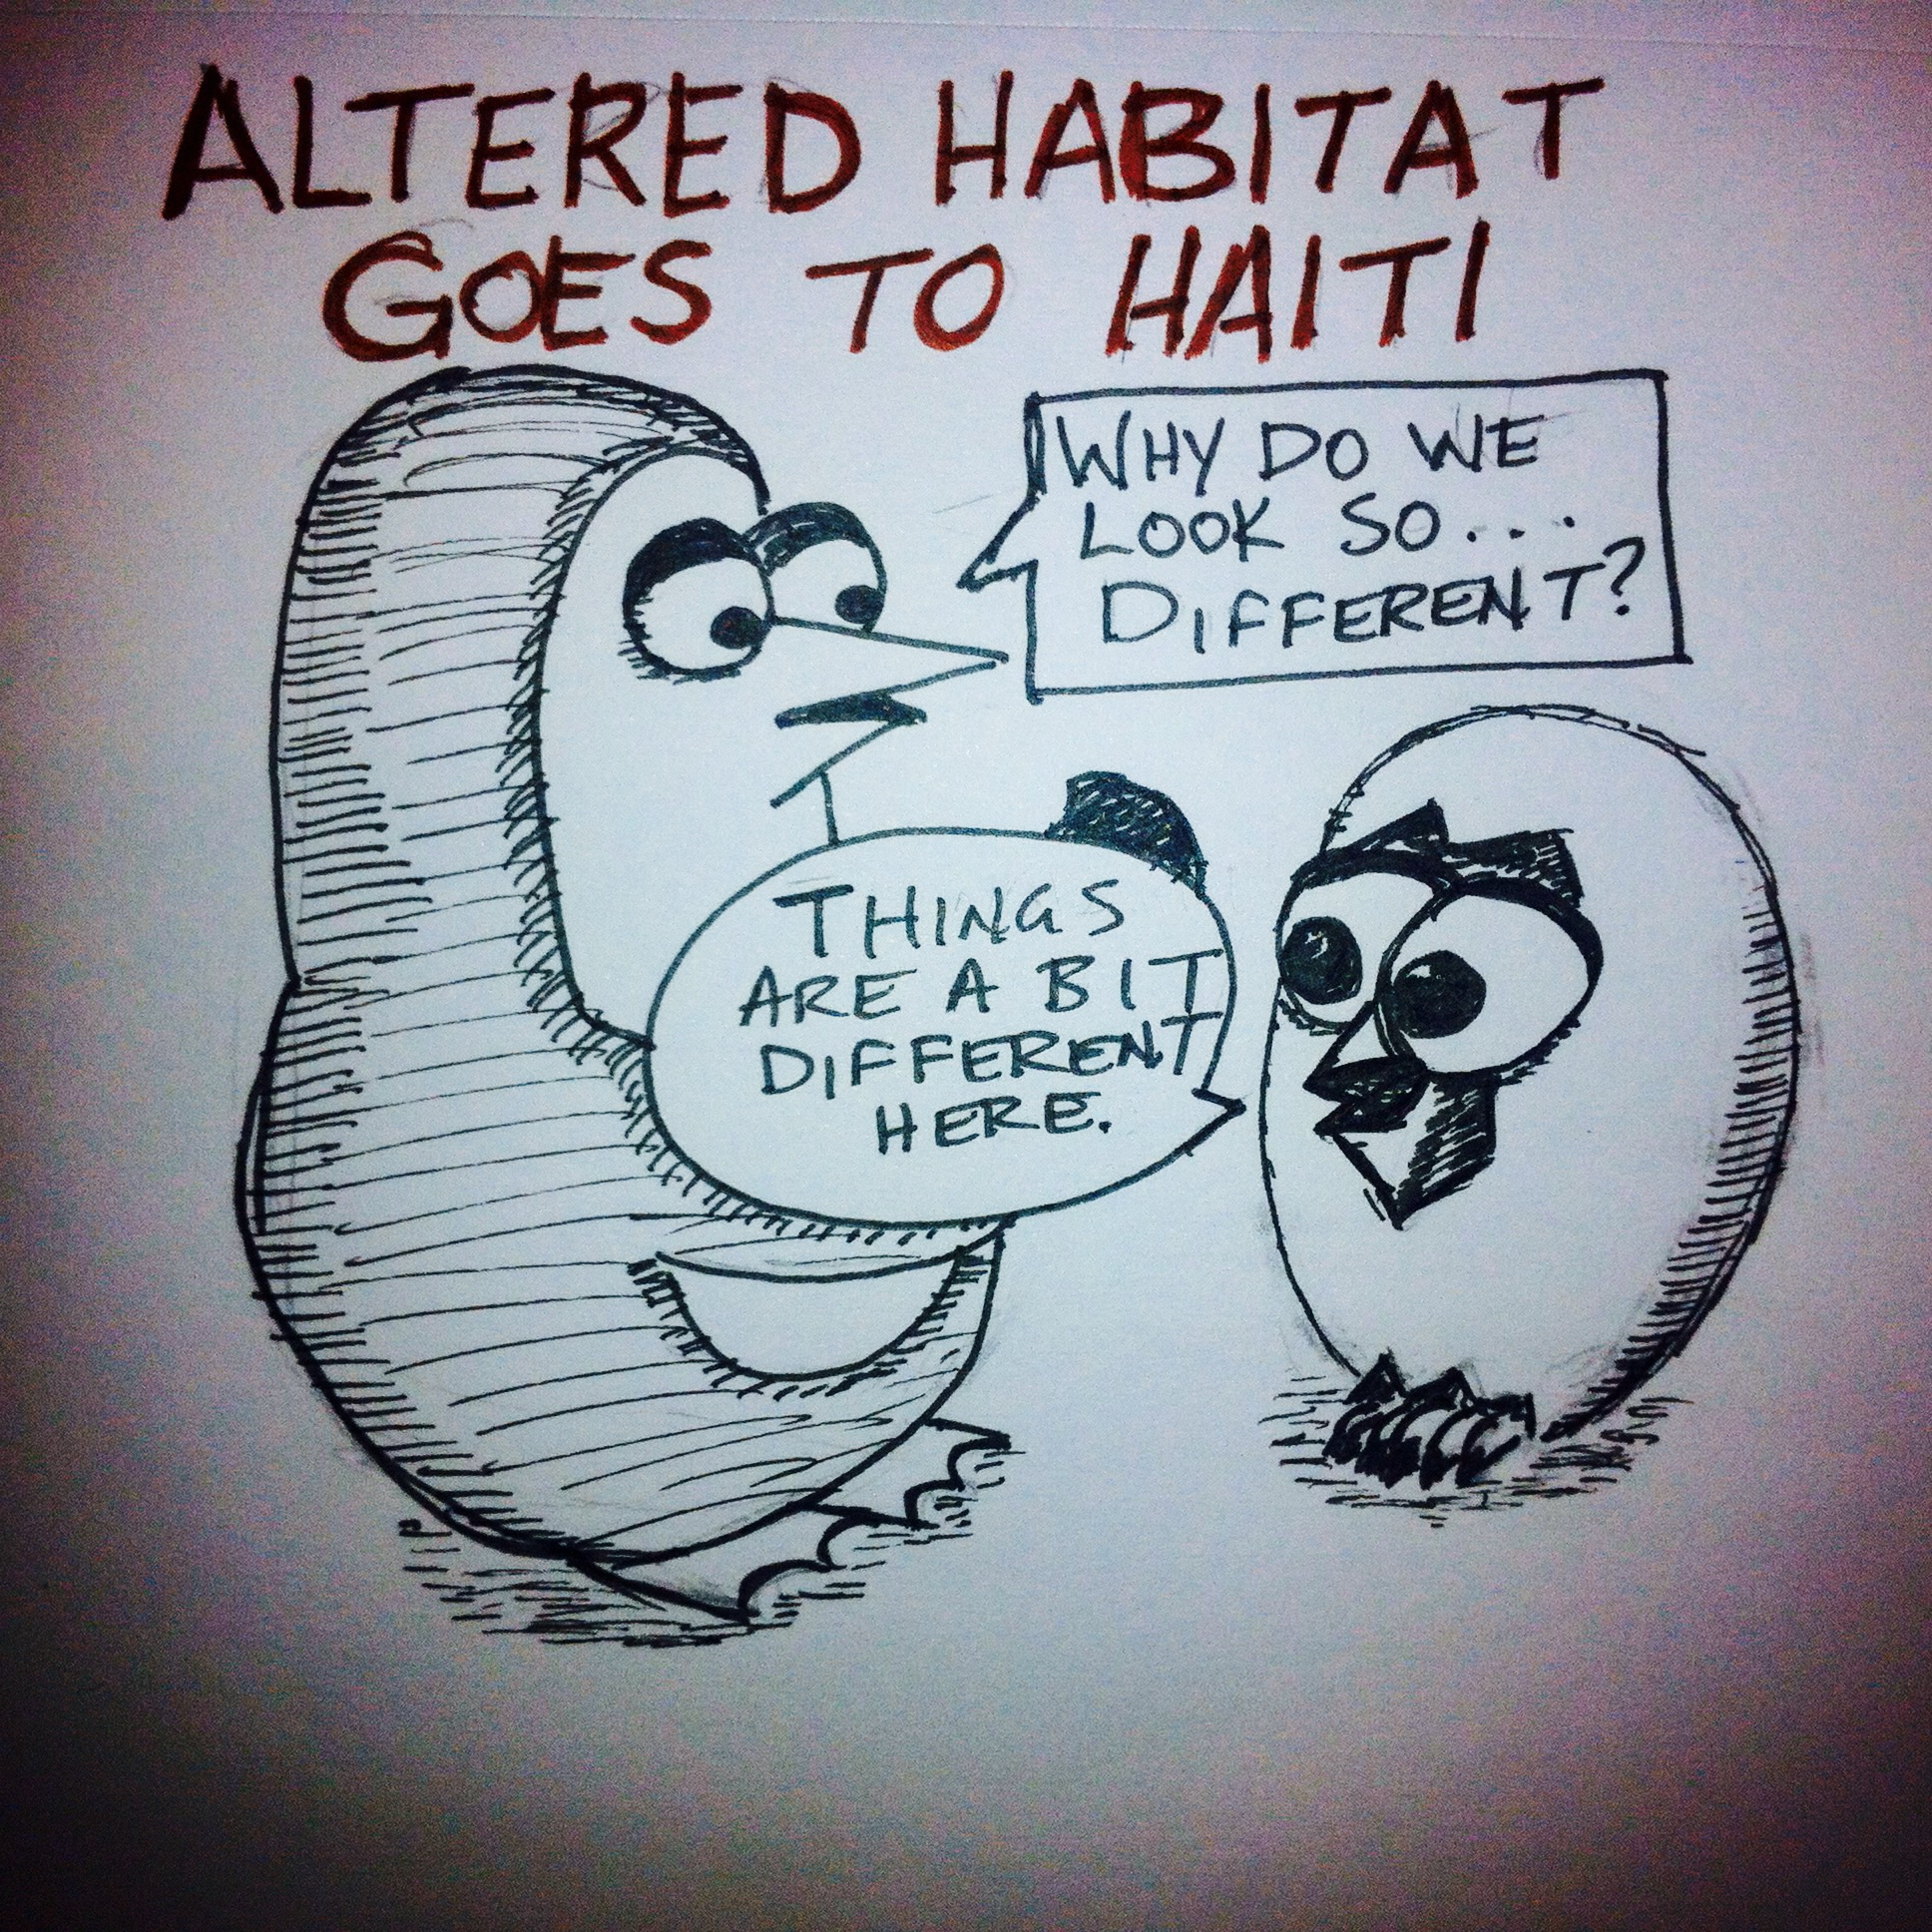 Altered Habitat goes to Haiti